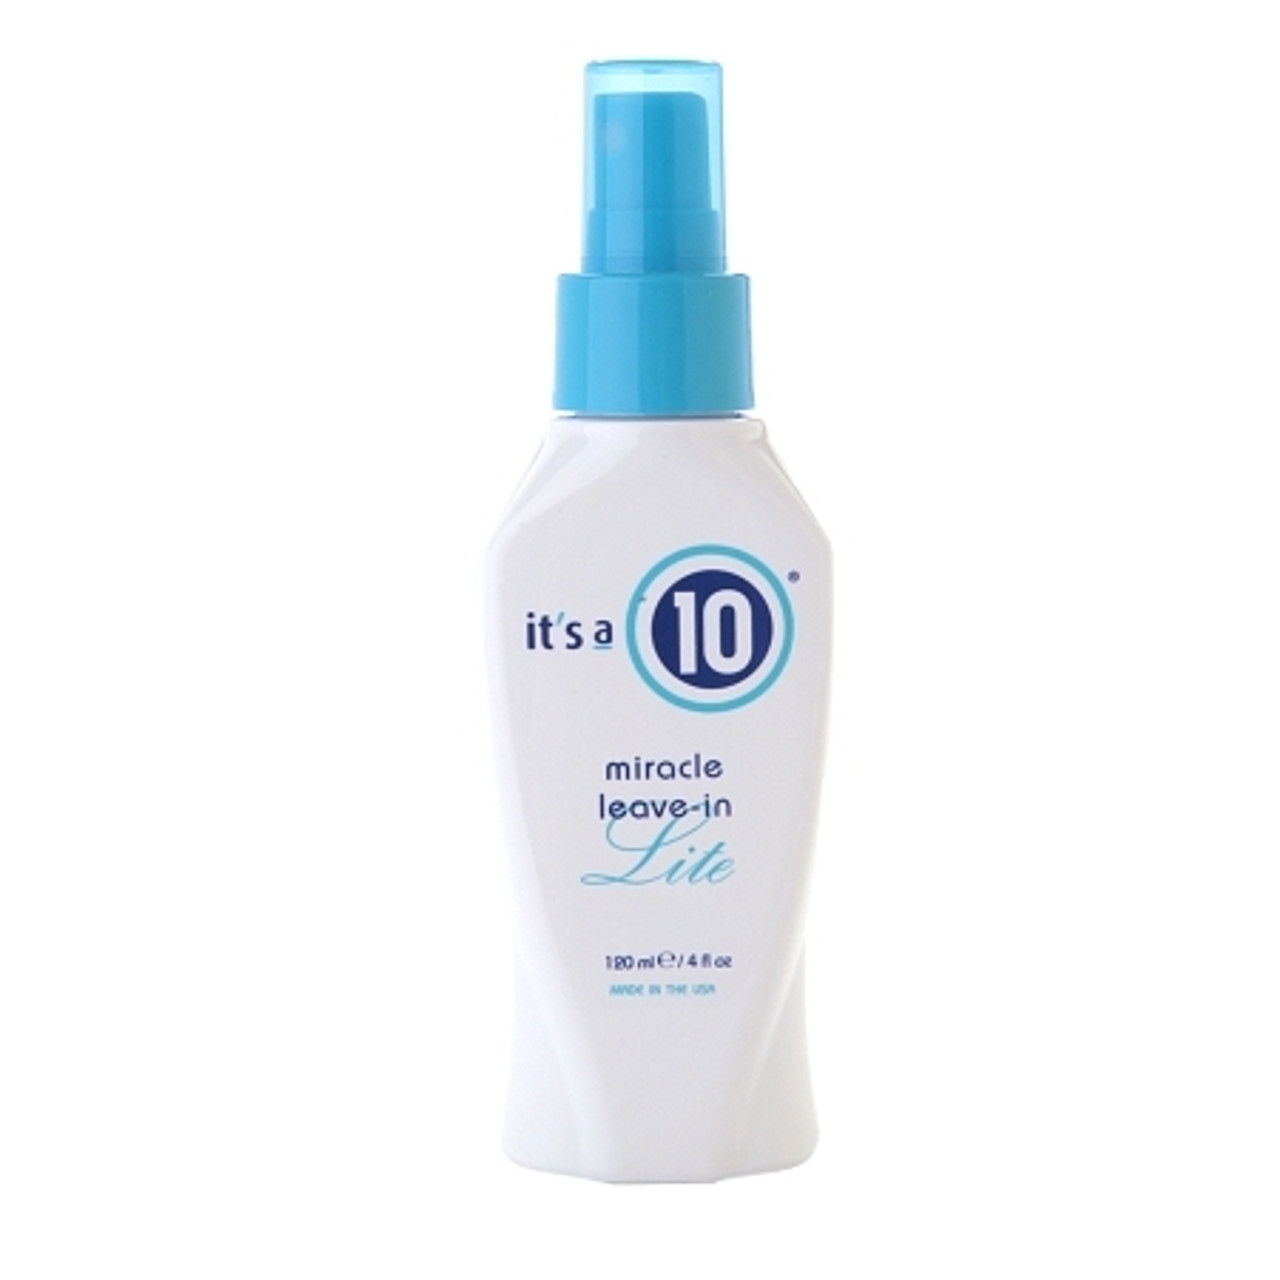 It's a 10 Miracle Volumizing Leave-In Light